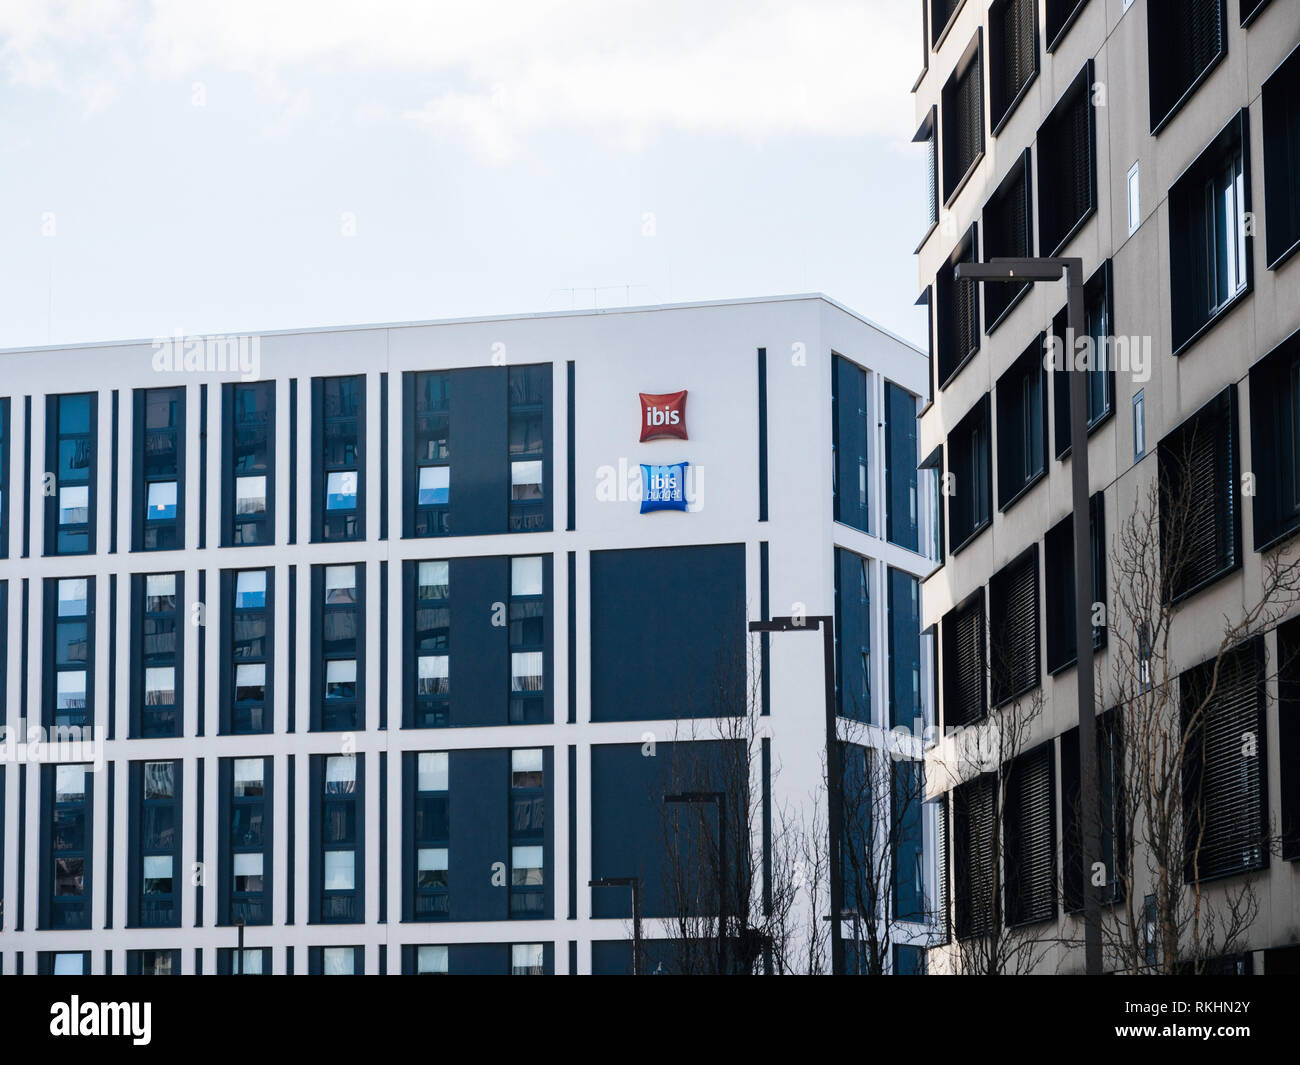 HAMBURG, GERMANY - MAR 20, 2018: Logotype of Ibis and Ibis Budget hotels member of Accor hotel group on the white facade - Stock Image